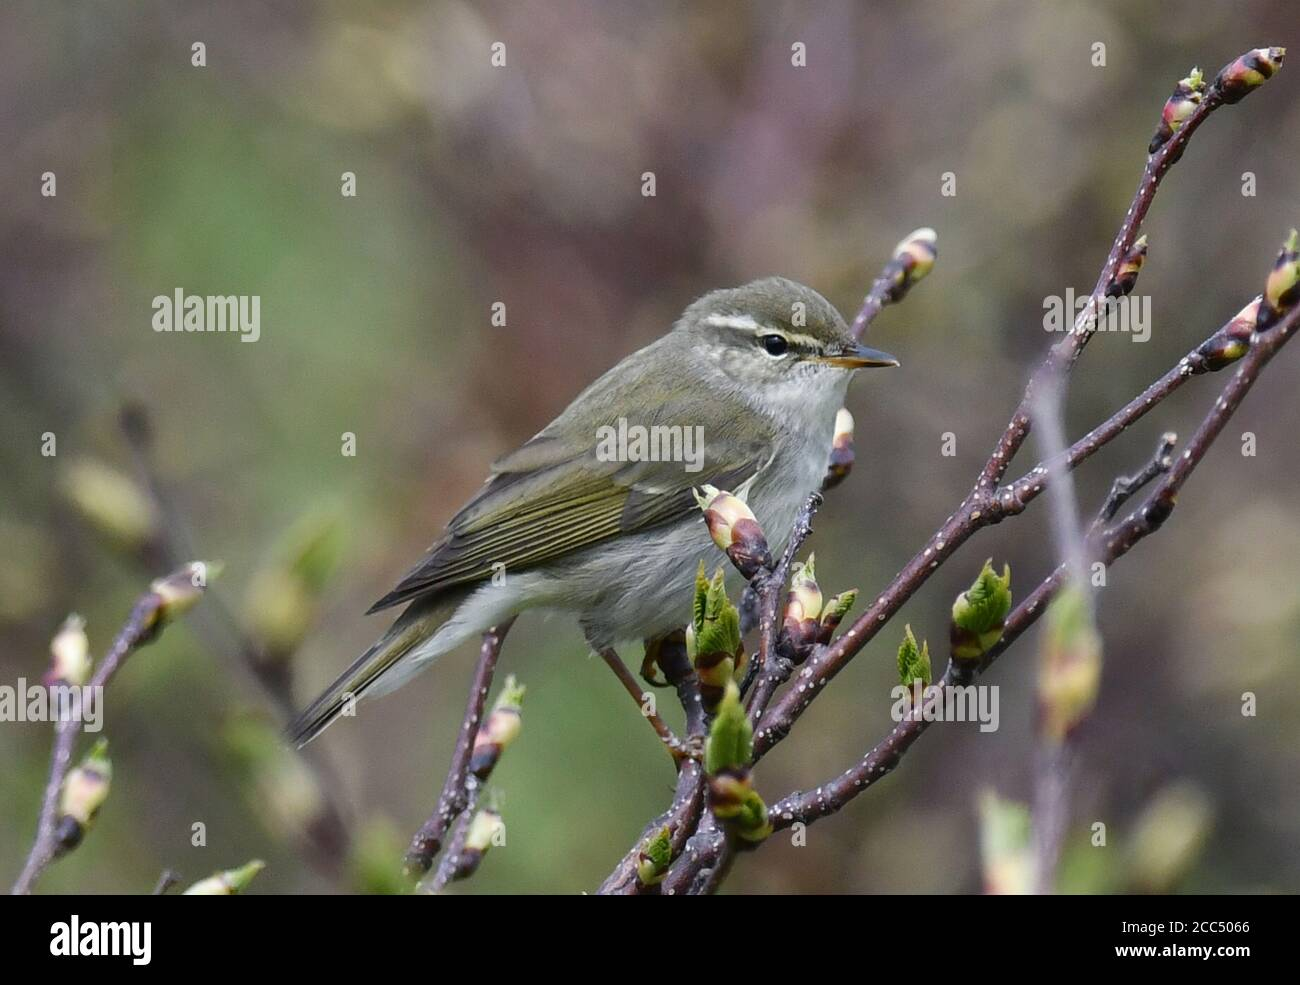 Kamchatka Leaf Warbler (Phylloscopus examinandus, Seicercus examinandus), perched in a low bush, Russia, Kurile Islands, Simushi Stock Photo